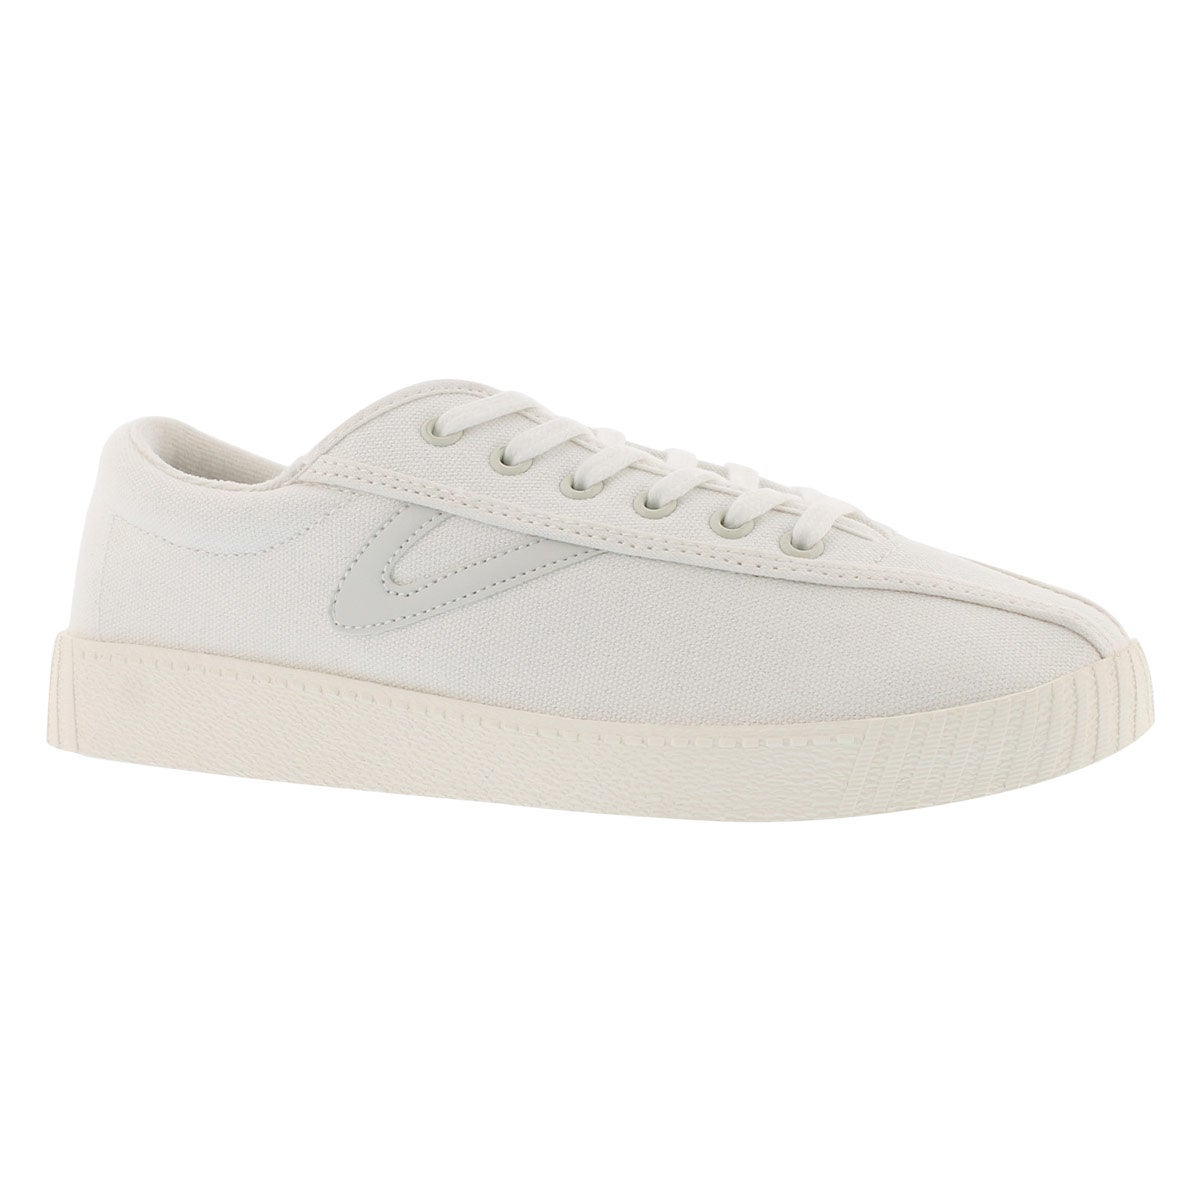 Women's NYLITE PLUS white sneakers